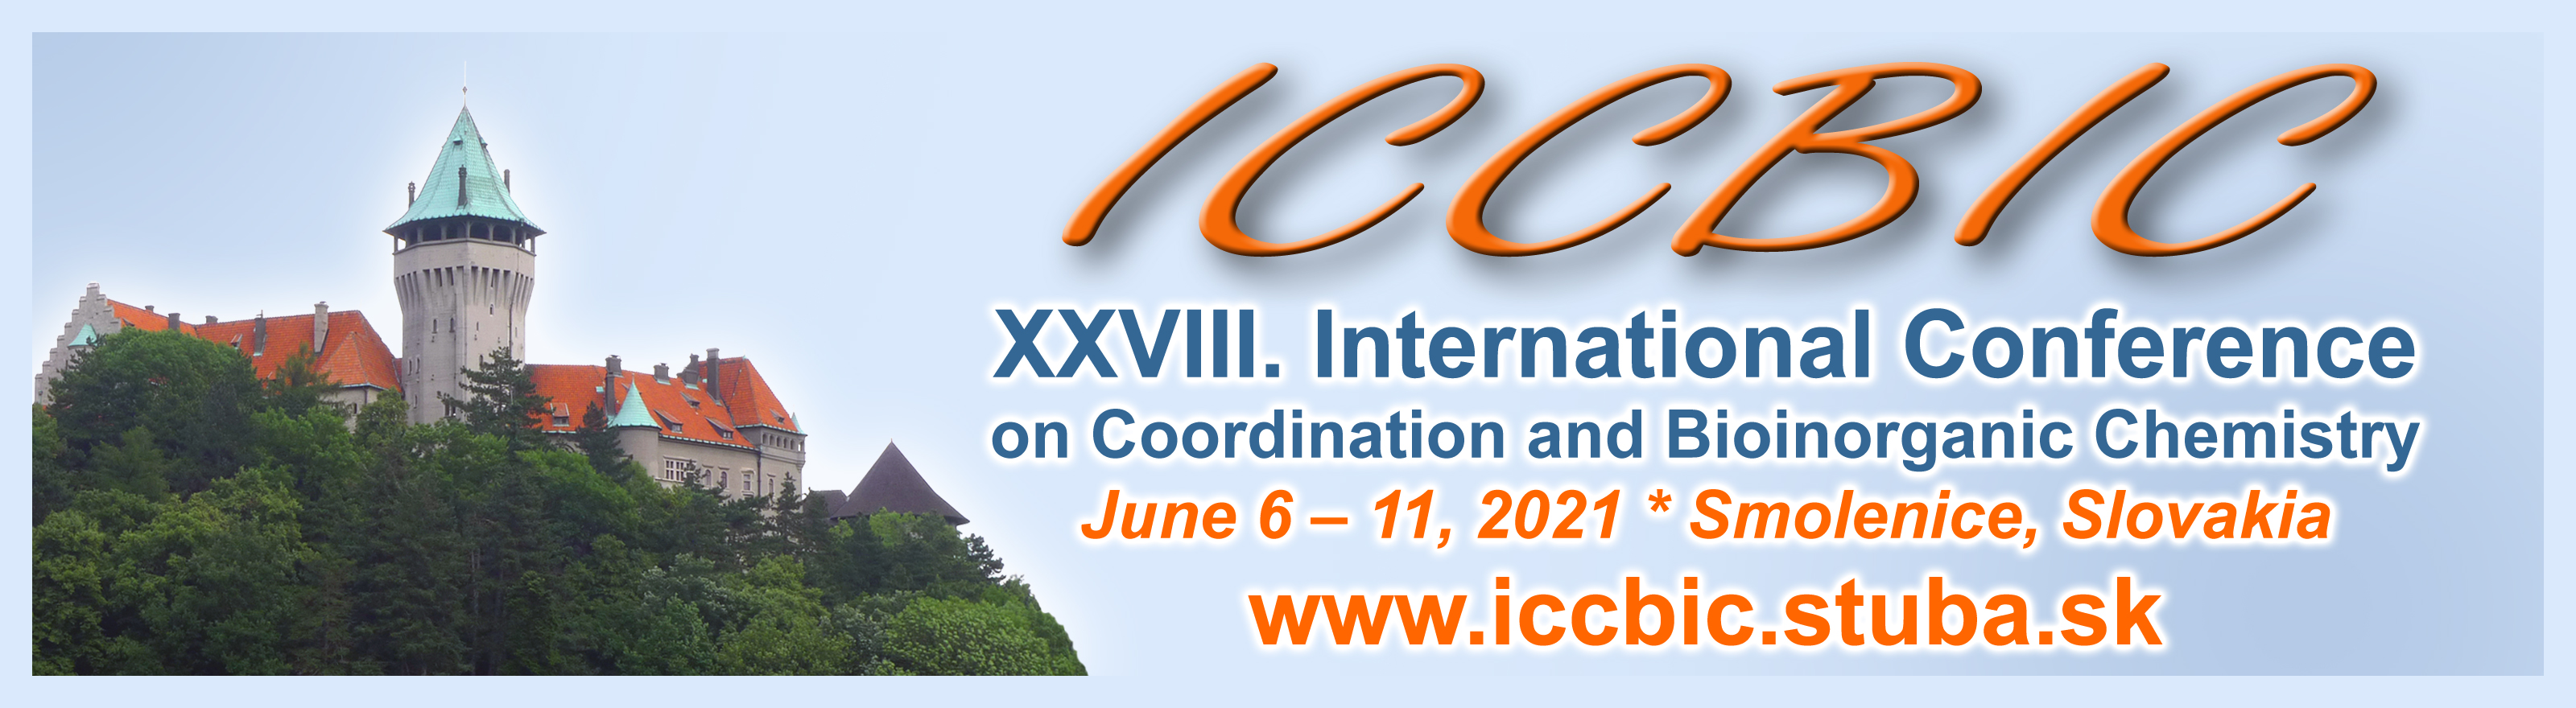 XXVIII. International Conference on Coordination and Bioinorganic Chemistry